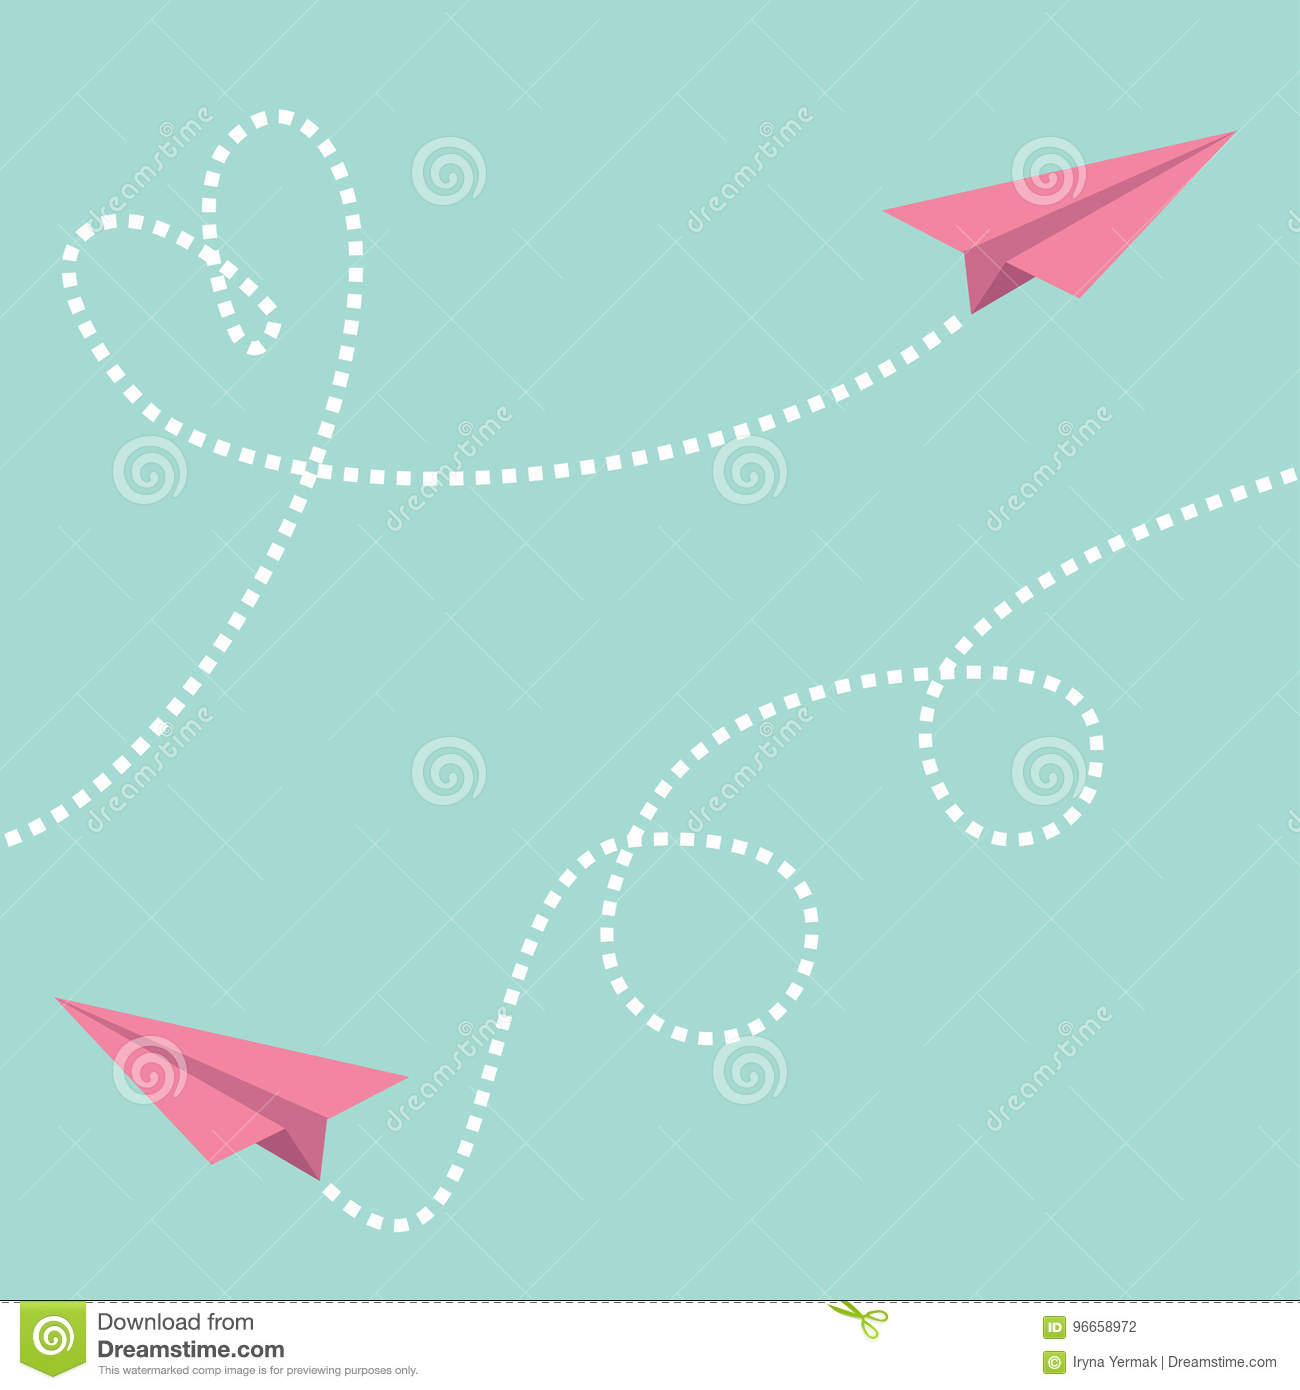 Download Two Pink Flying Origami Paper Plane Dashed Line Heart Loop Happy Valentines Day Greeting